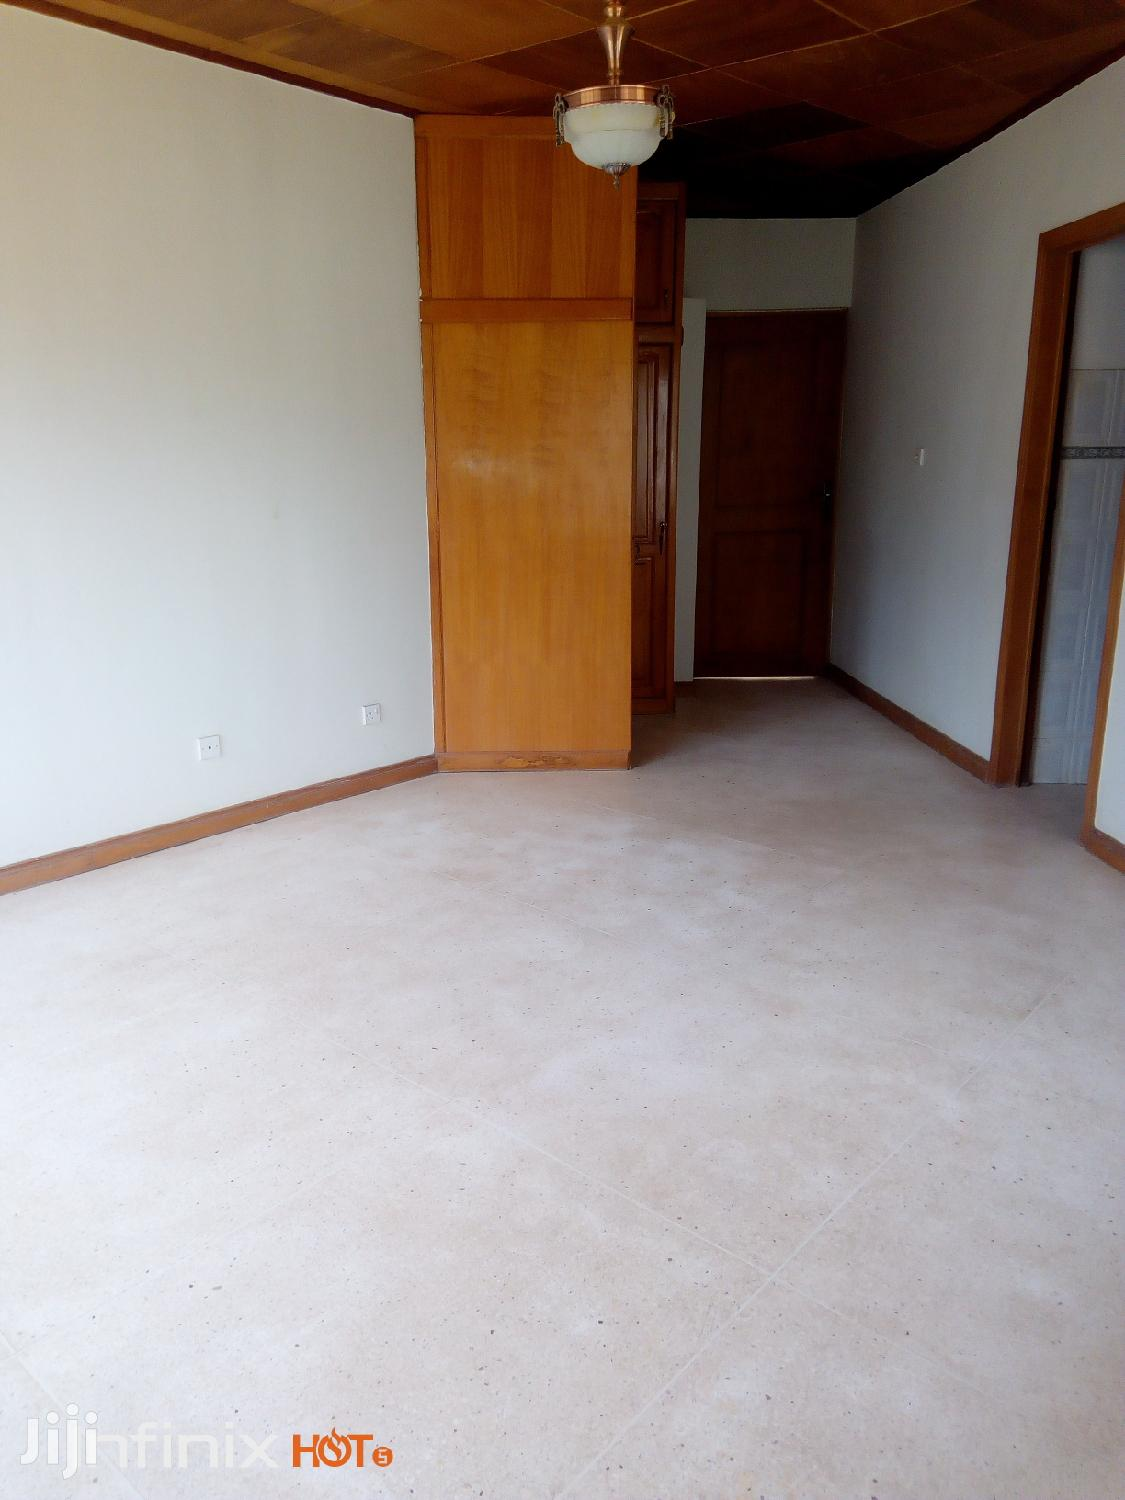 5/2 Bedroom House To Let At Ofankor